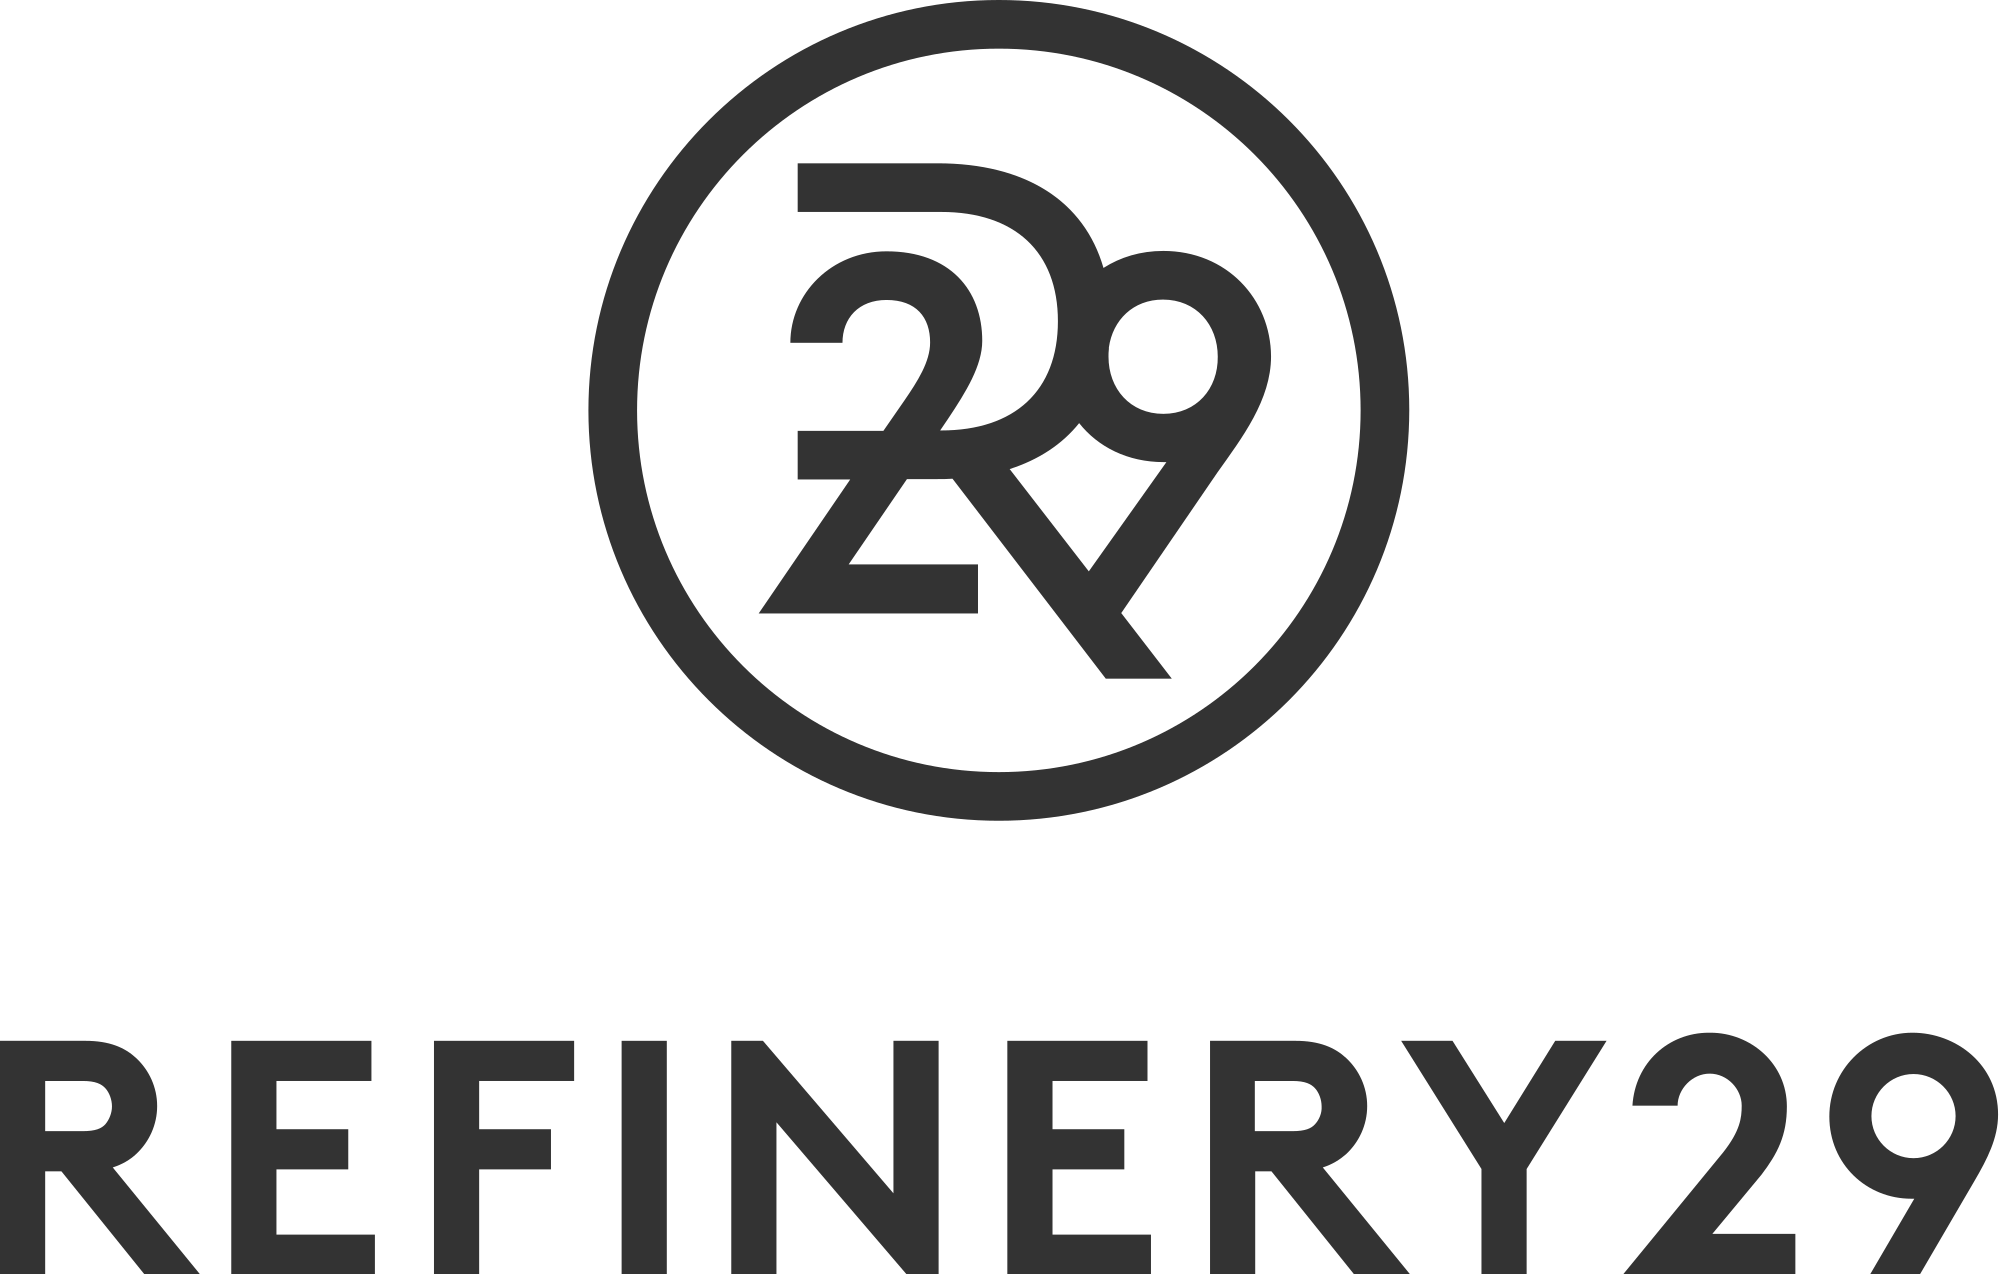 Refinery29 Logo, Refinery29 Symbol, Meaning, History and ...